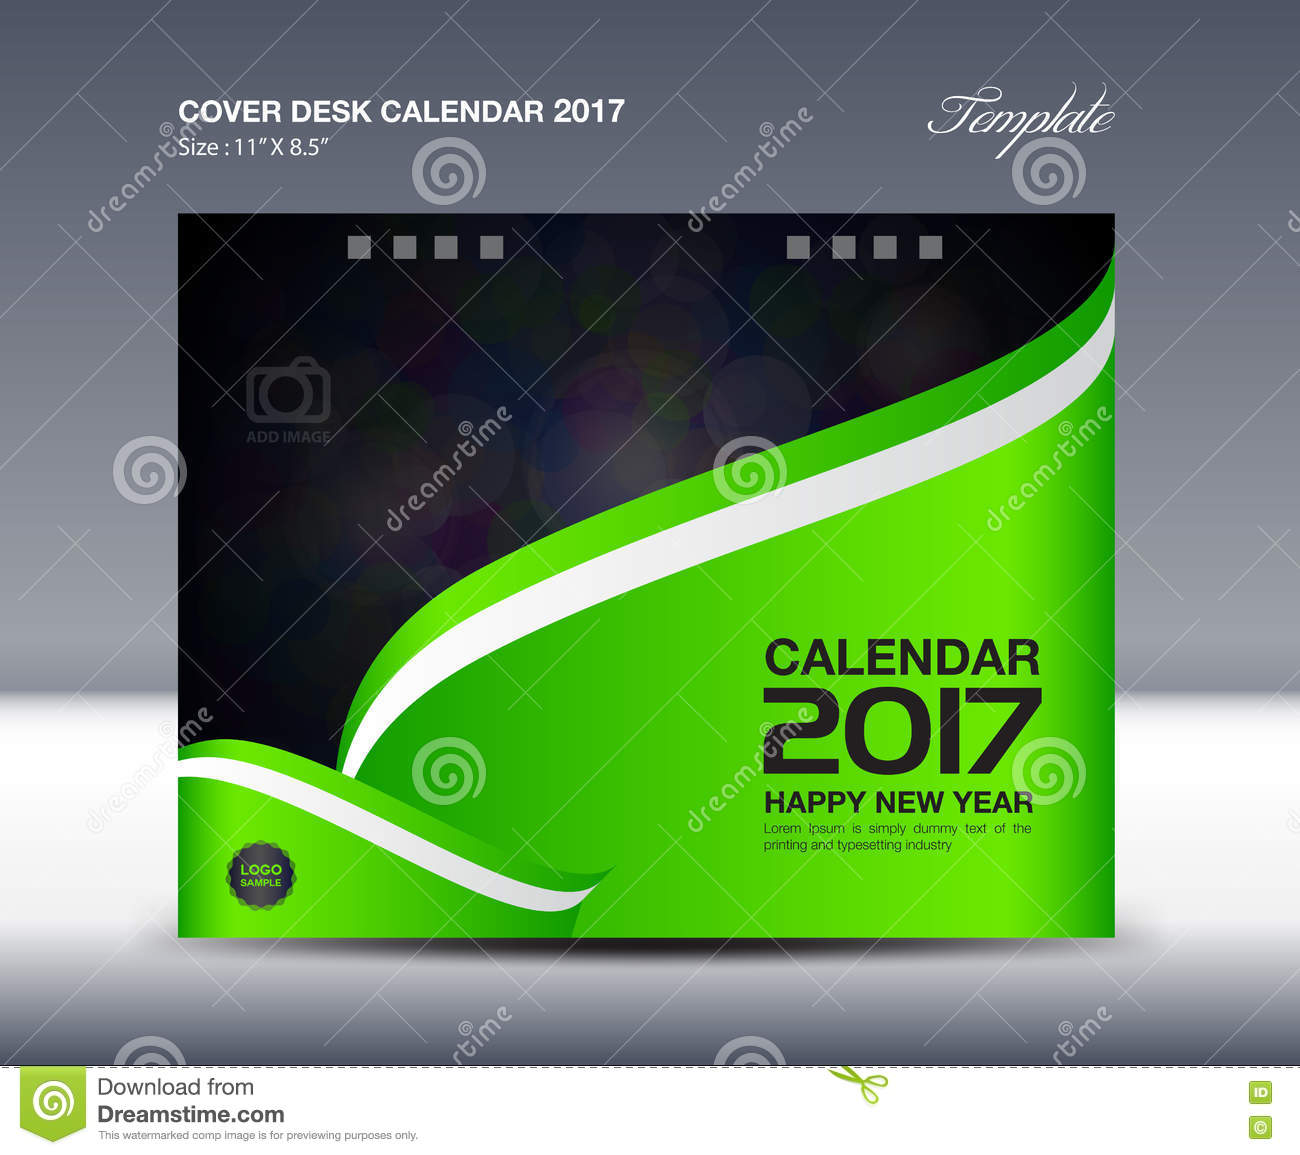 Calendar Design Vector Free Download : Green desk calendar for year cover